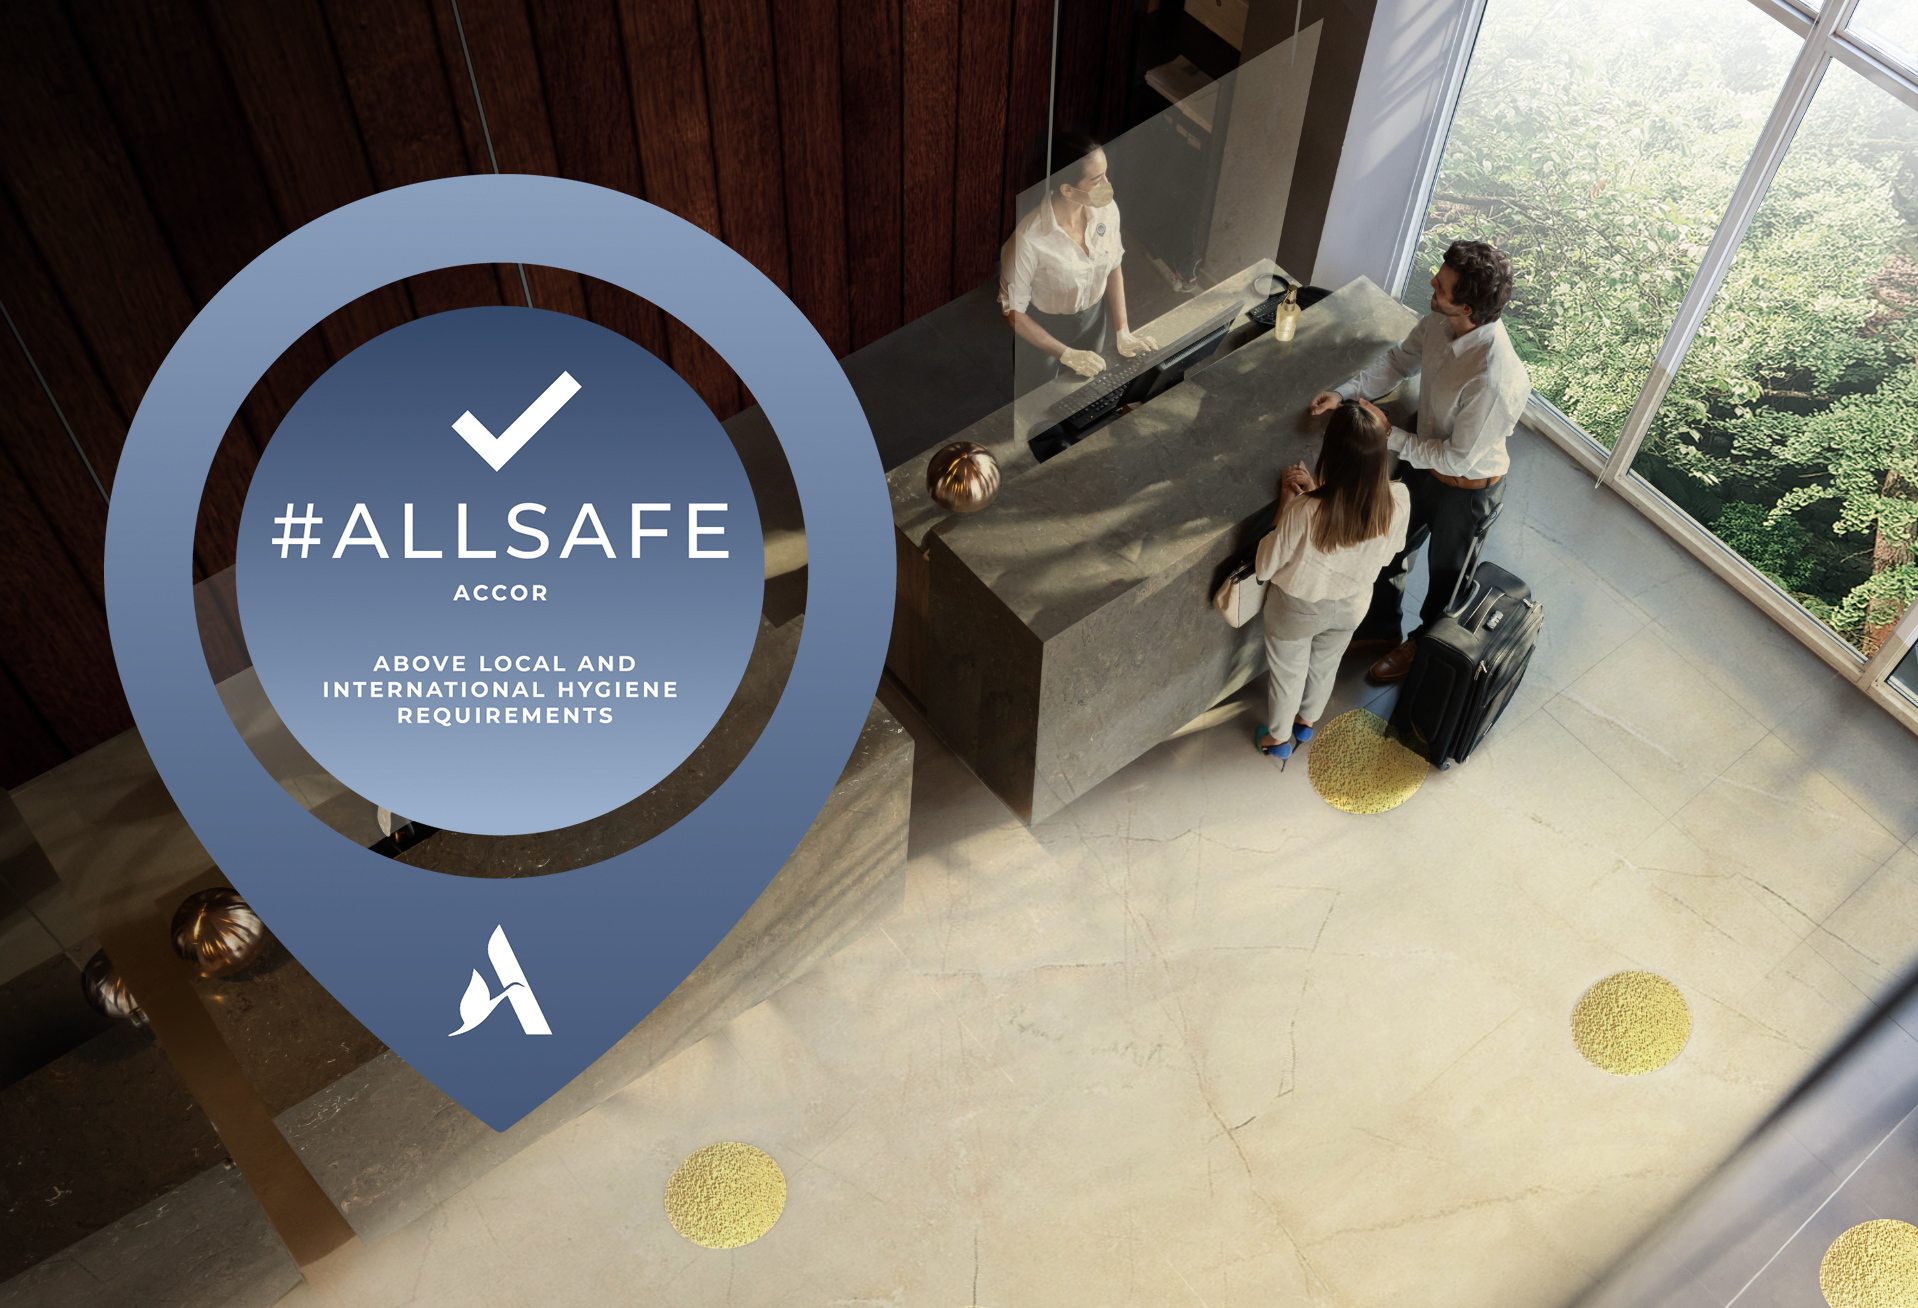 Accor reinforces its hygiene protocols under an own label